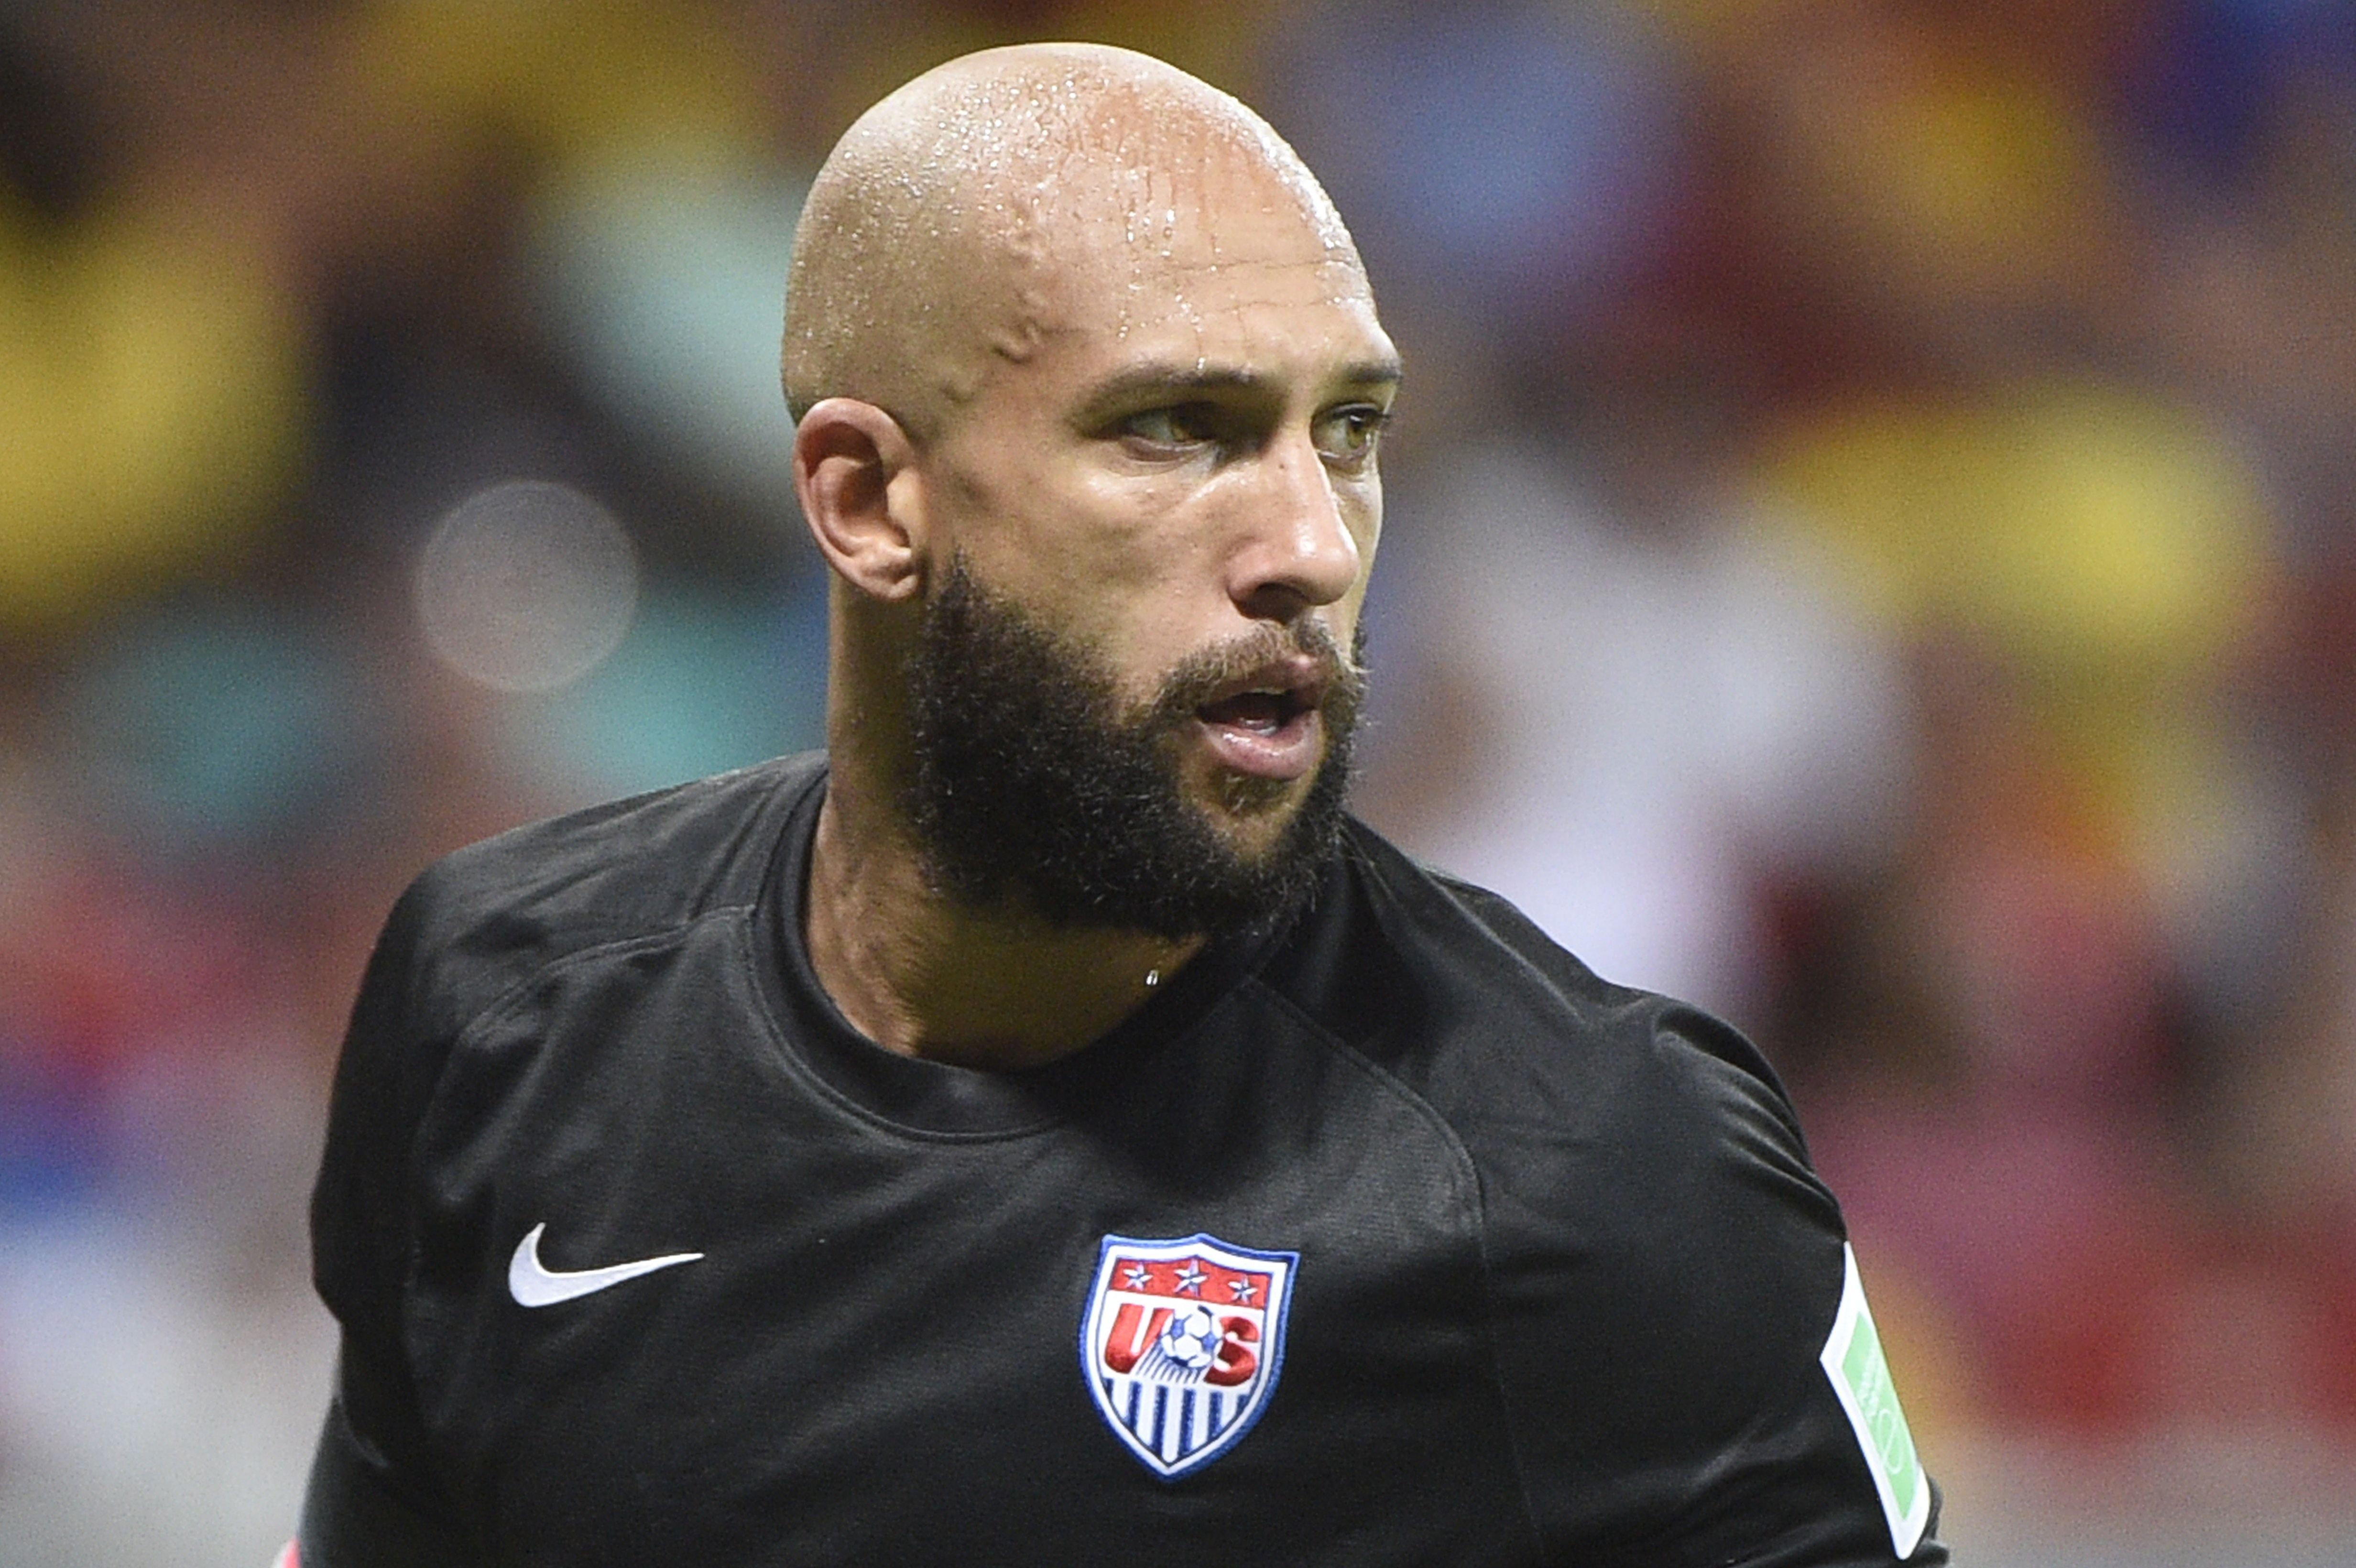 US goalkeeper Tim Howard during a Round of 16 football match between Belgium and USA during the 2014 FIFA World Cup at Fonte Nova Arena in Salvador, Brazil on July 1, 2014.